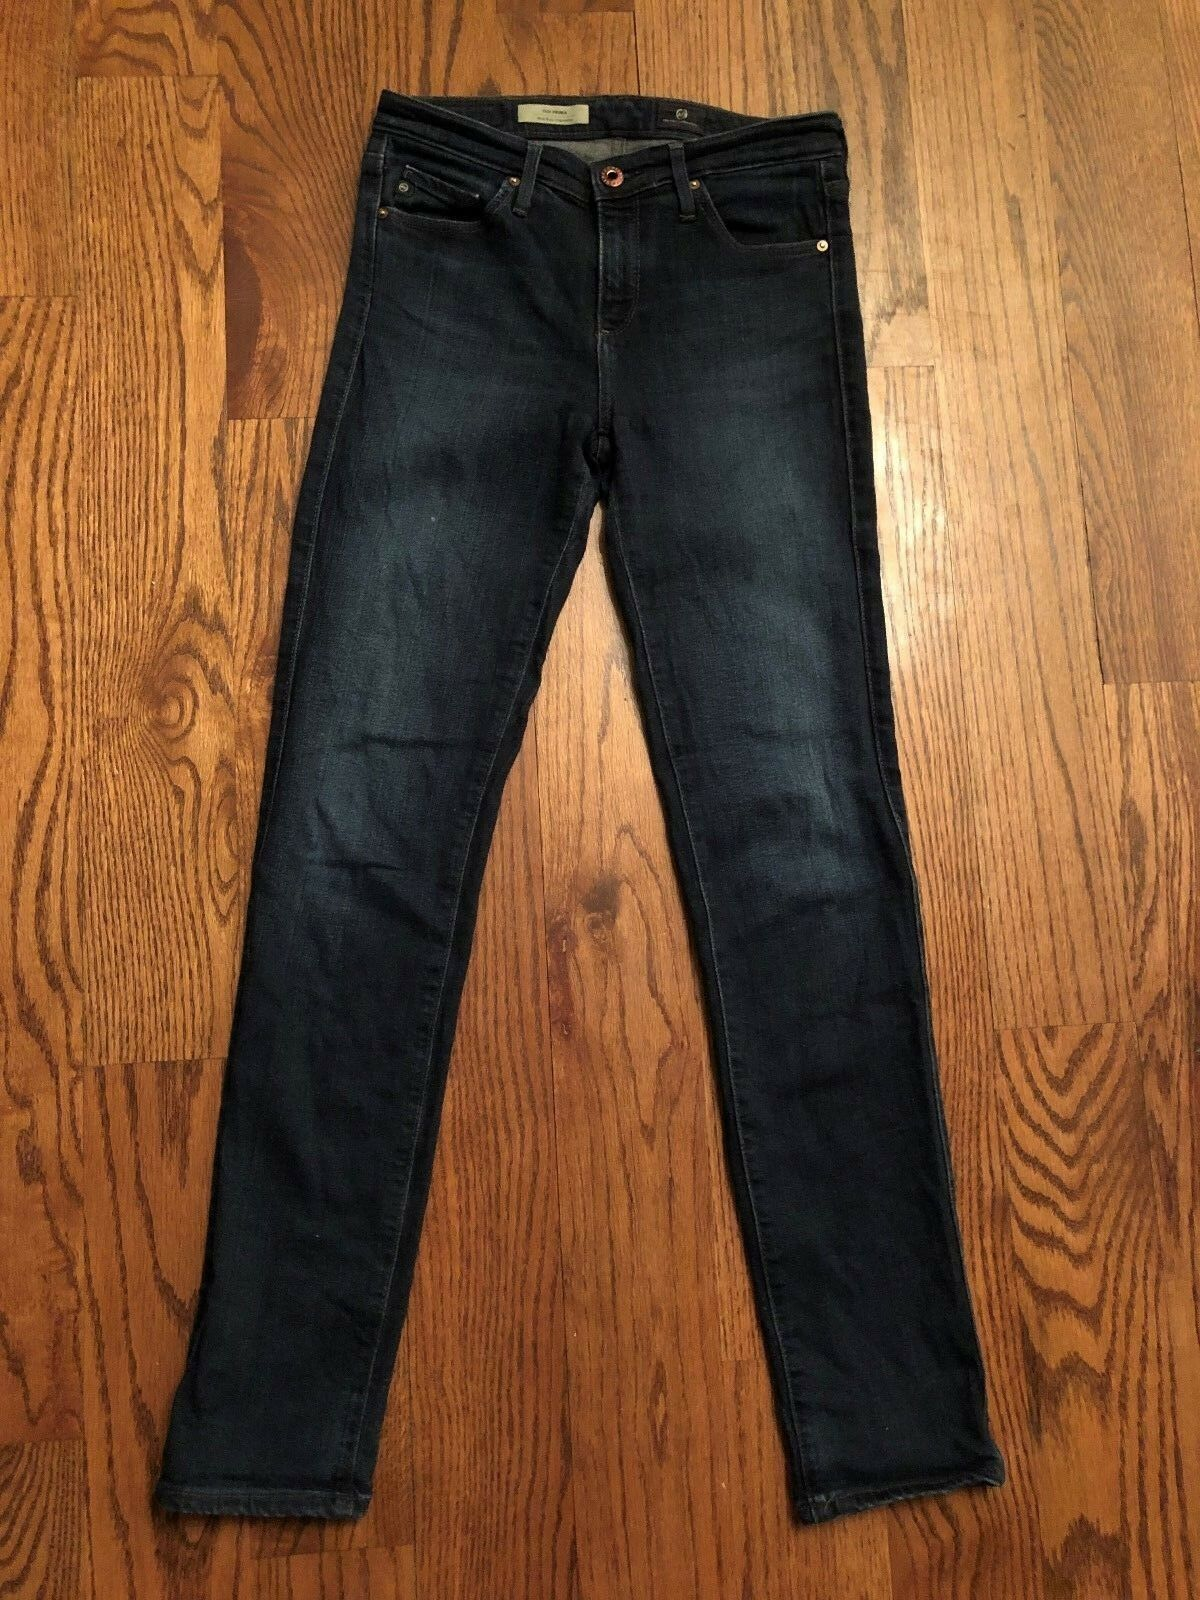 25 x 29.5 AG Adriano goldschmied The Prima Mid-Rise Cigarette Skinny Jetsetter